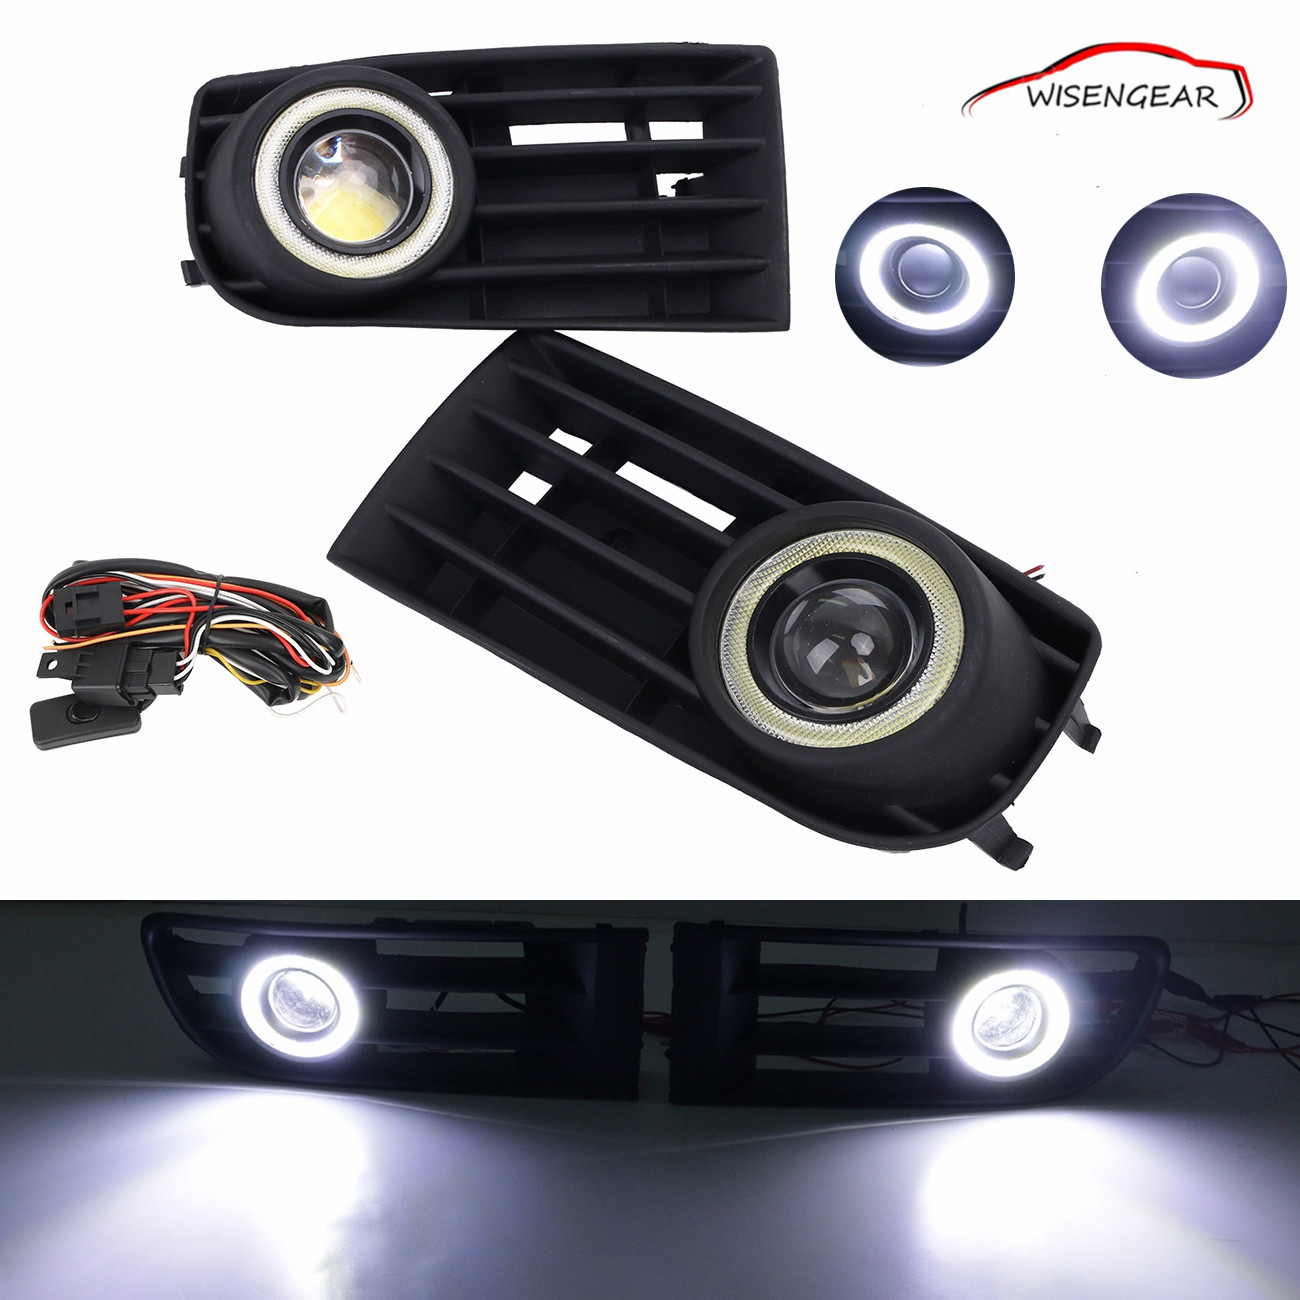 For VW Golf Mk5 Rabbit 2003-2009 Fog Lights Lamp DRL LED Daytime Running lights Bumper Grille projector lens fog lights C/5 front bumper fog lamp grille led convex lens fog light angel eyes for vw polo 2001 2002 2003 2004 2005 drl car accessory p364